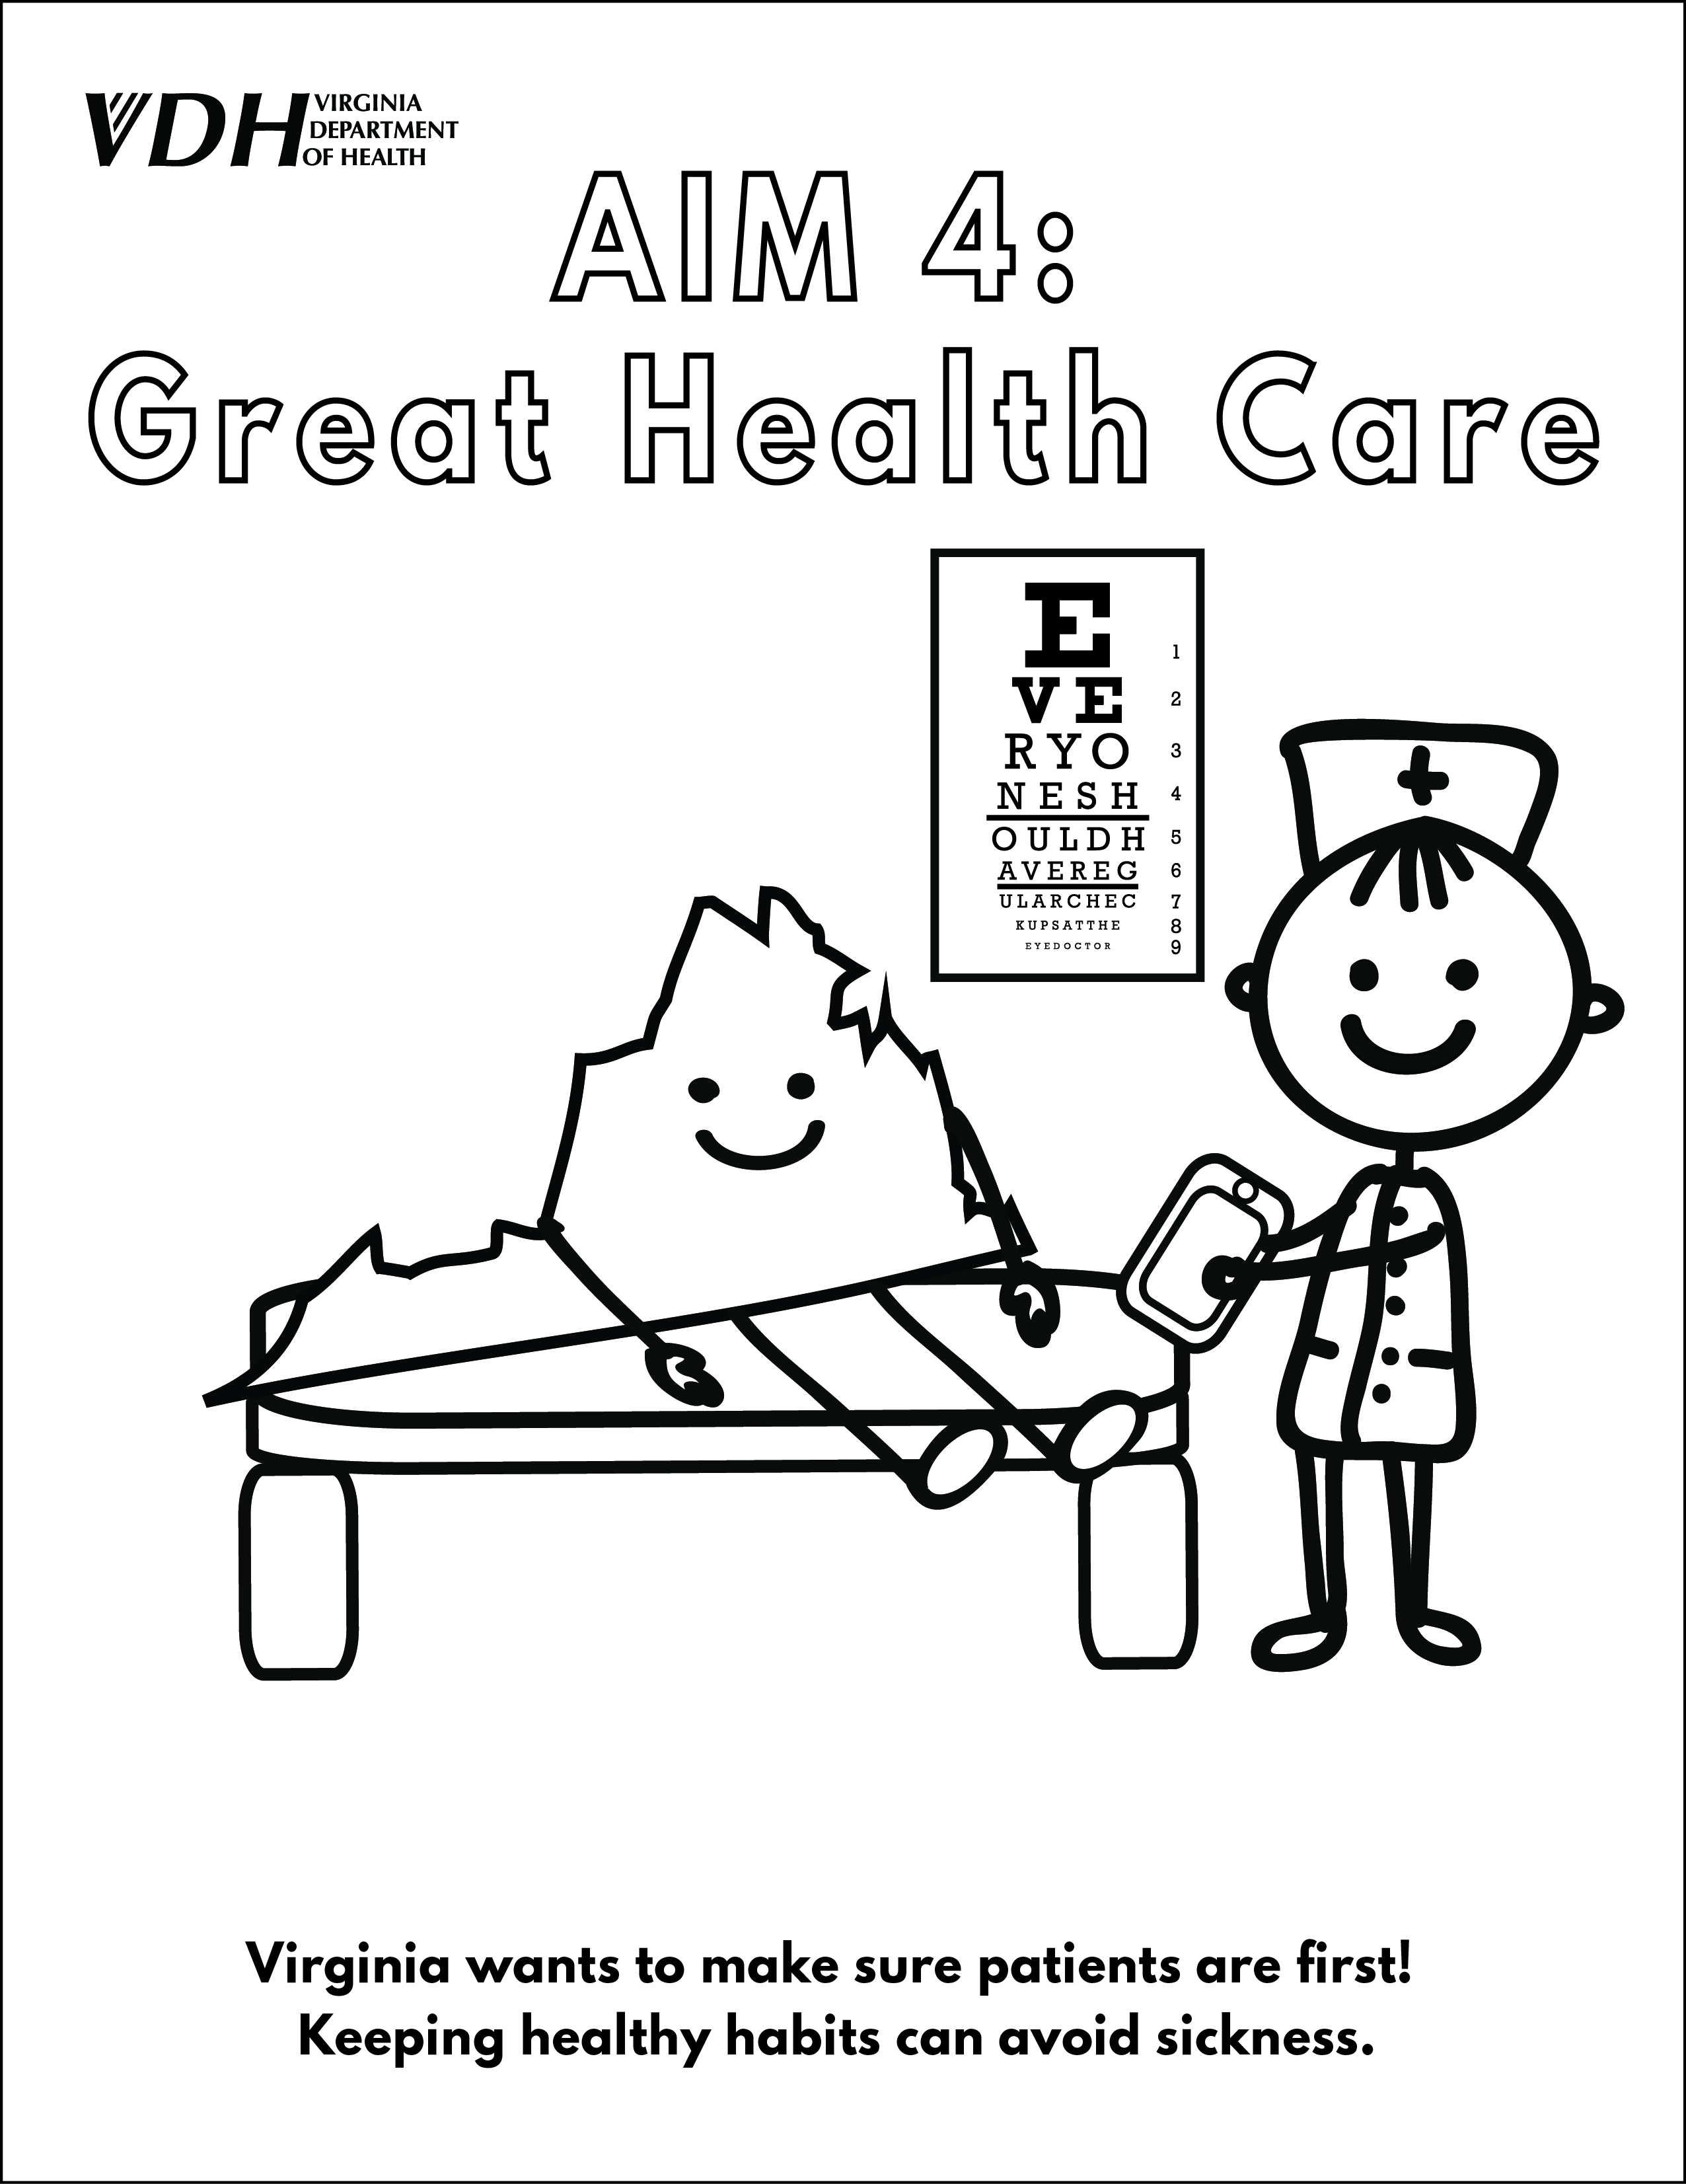 7 habits coloring pages - Free National Public Health Week U Virginia Department Of Health With Healthy Habits Coloring Pages